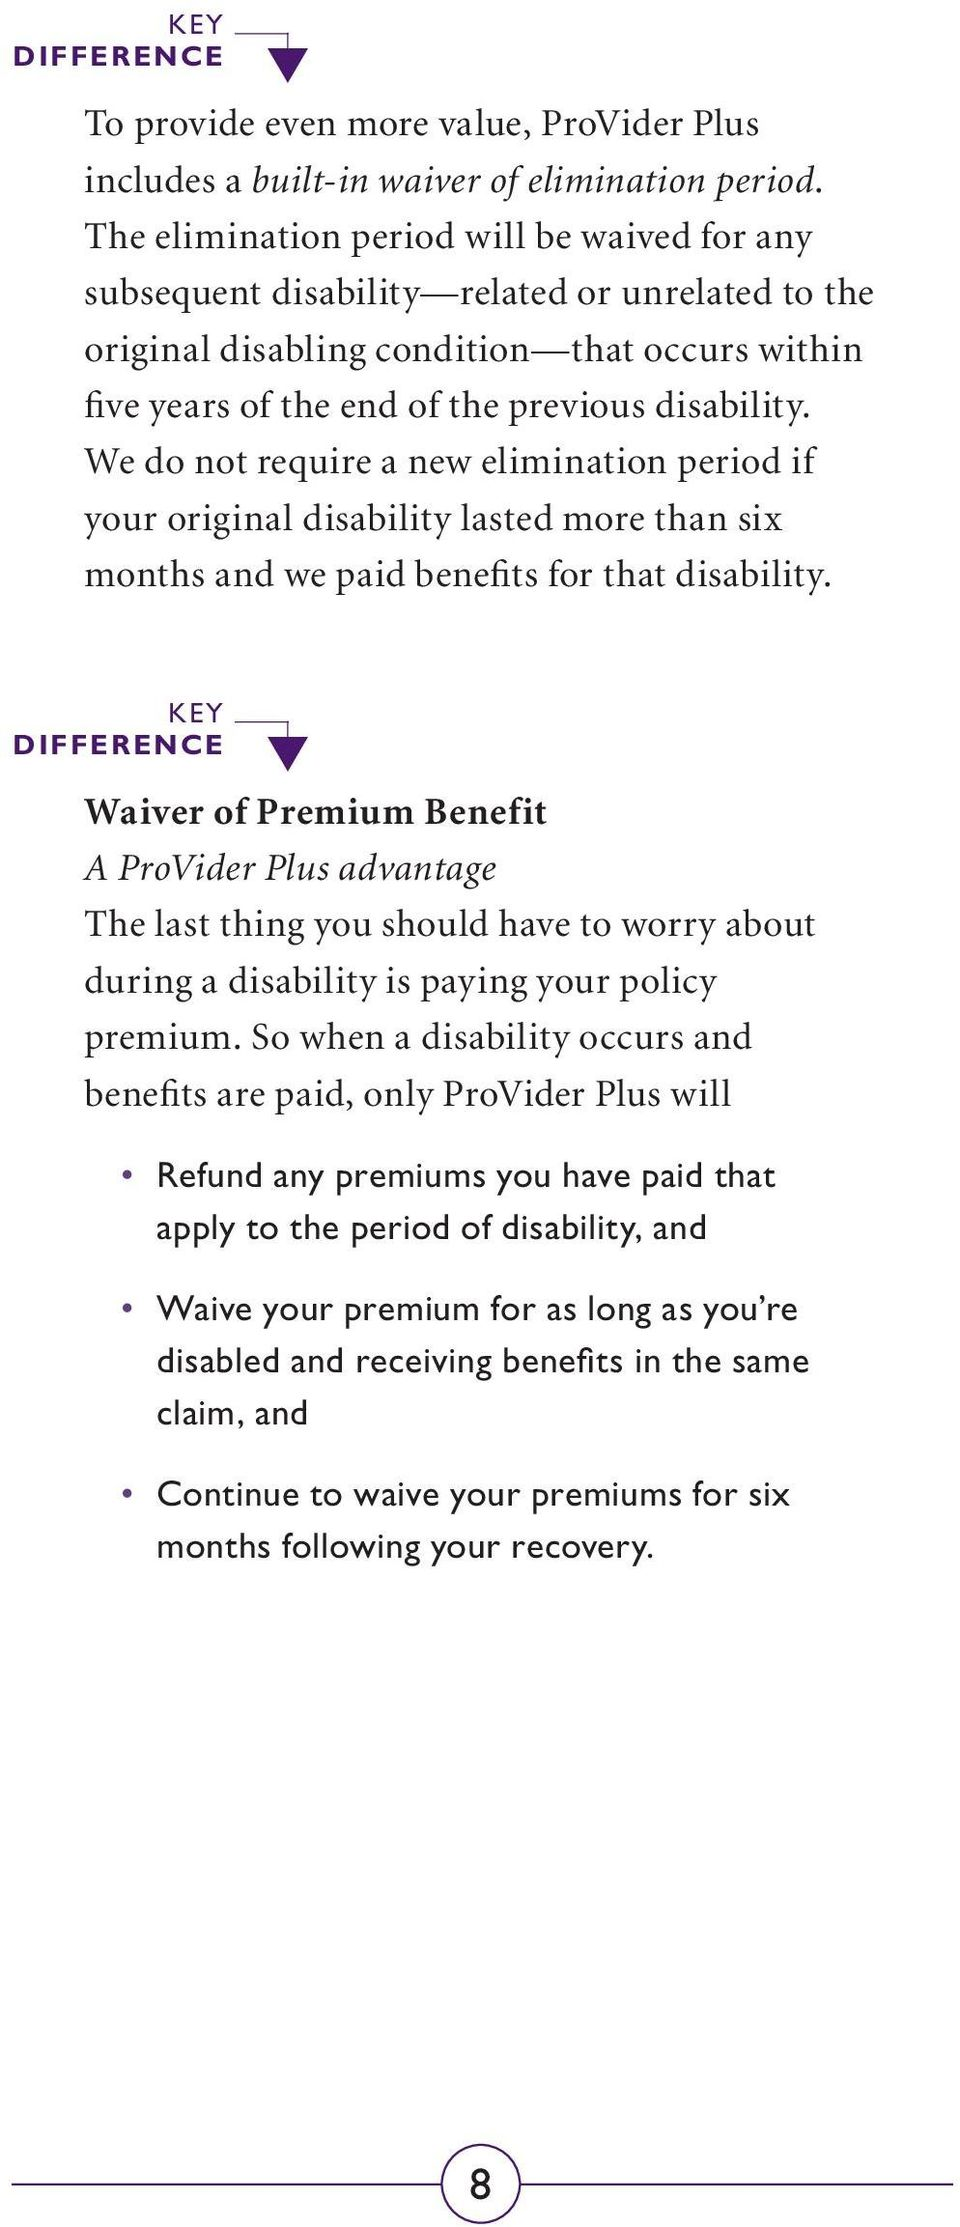 We do not require a new elimination period if your original disability lasted more than six months and we paid benefits for that disability.